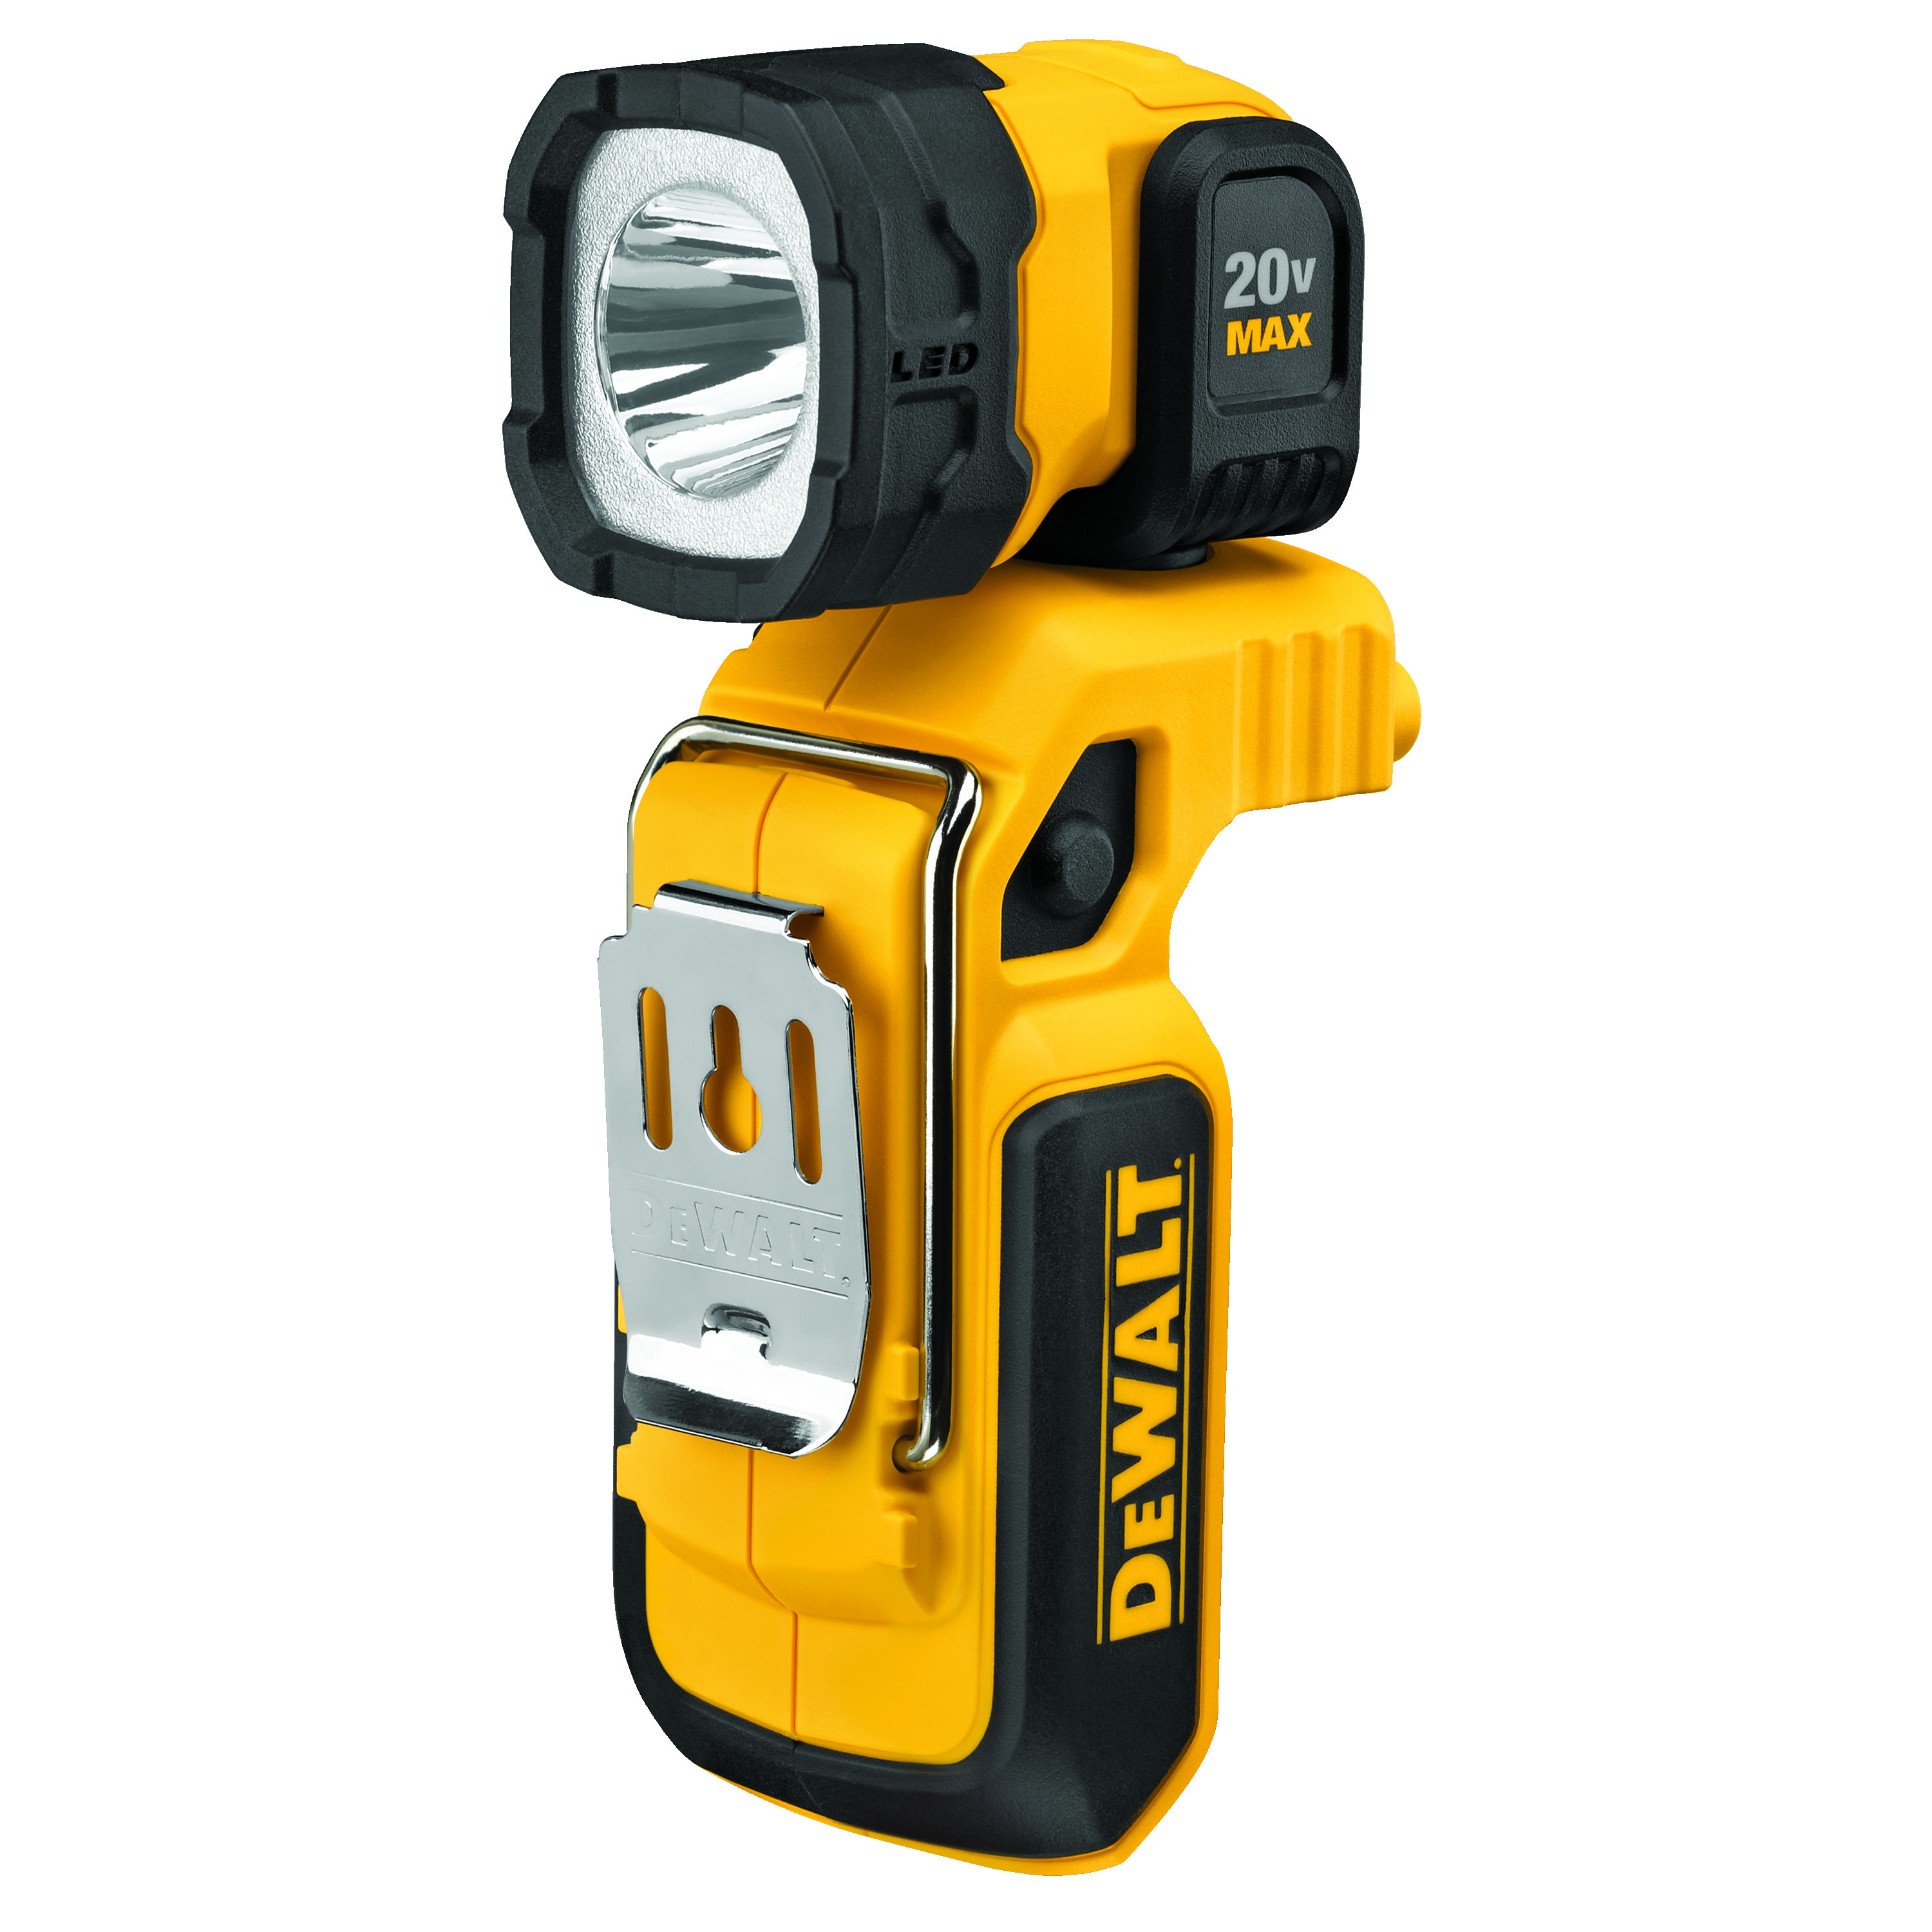 DeWALT® 20V MAX* MATRIX™ DCL044 Cordless Fixed Focus Portable Rechargeable Handheld Woklight, LED Lamp, 20 V, Lithium-Ion Battery, Tool Only